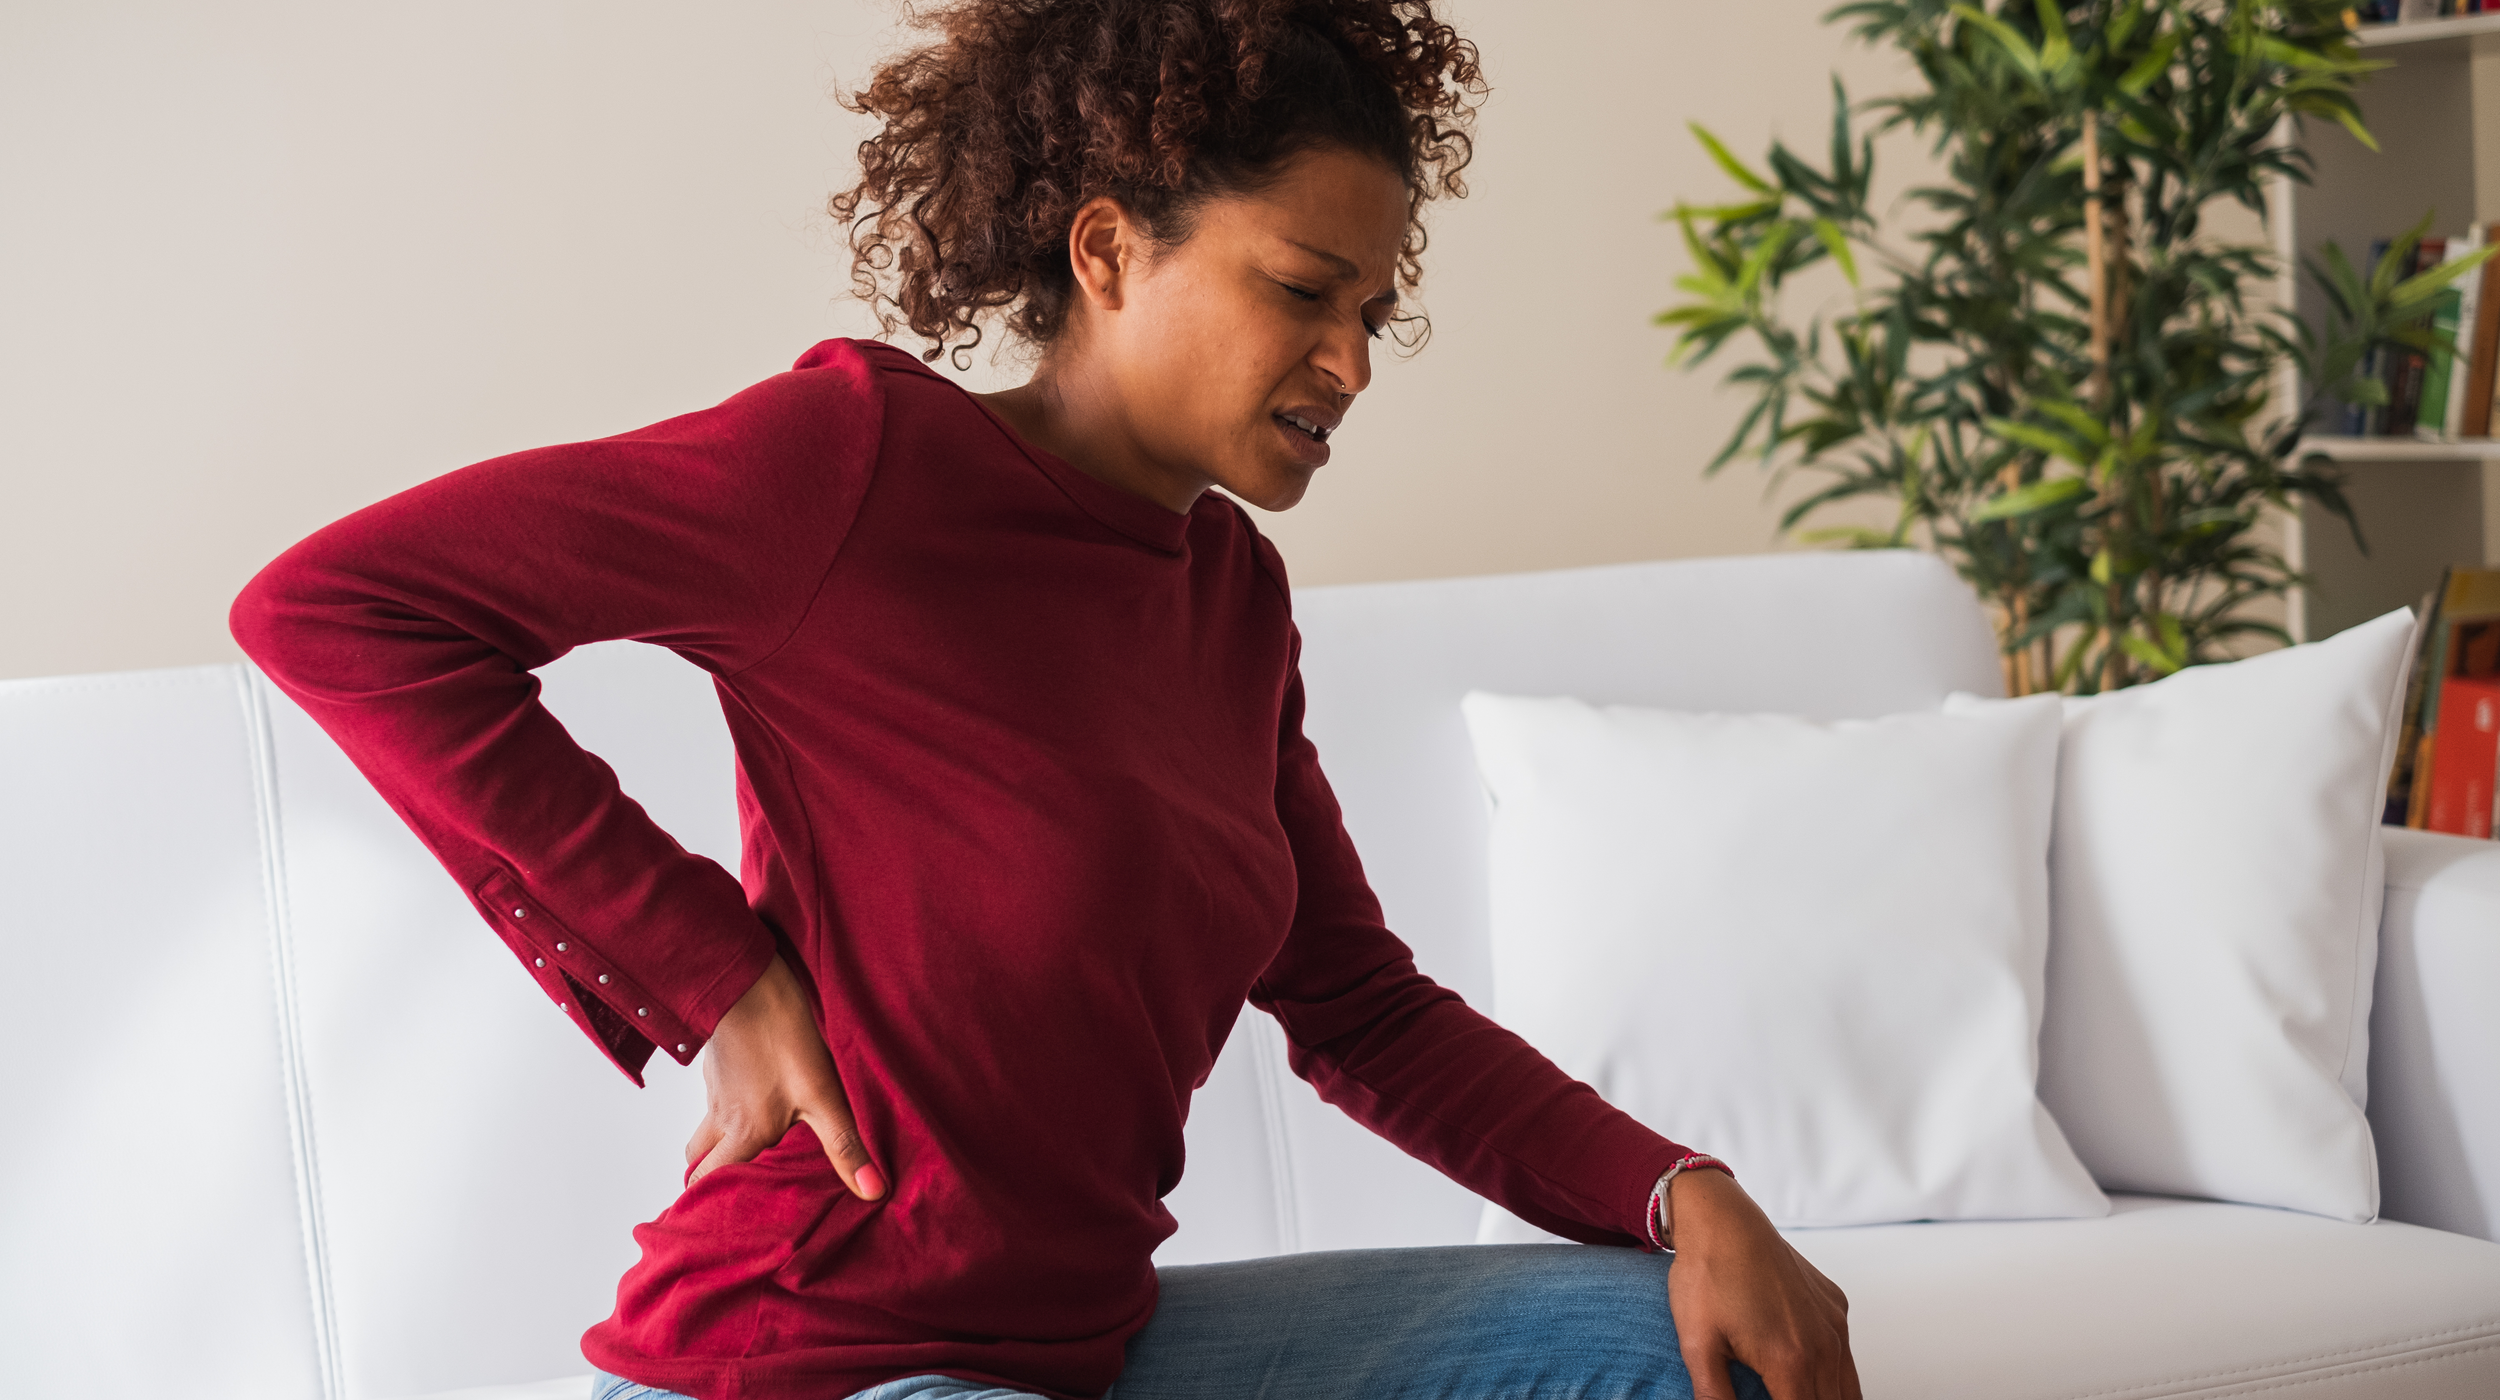 3 Things You Can do to Fight Chronic Pain